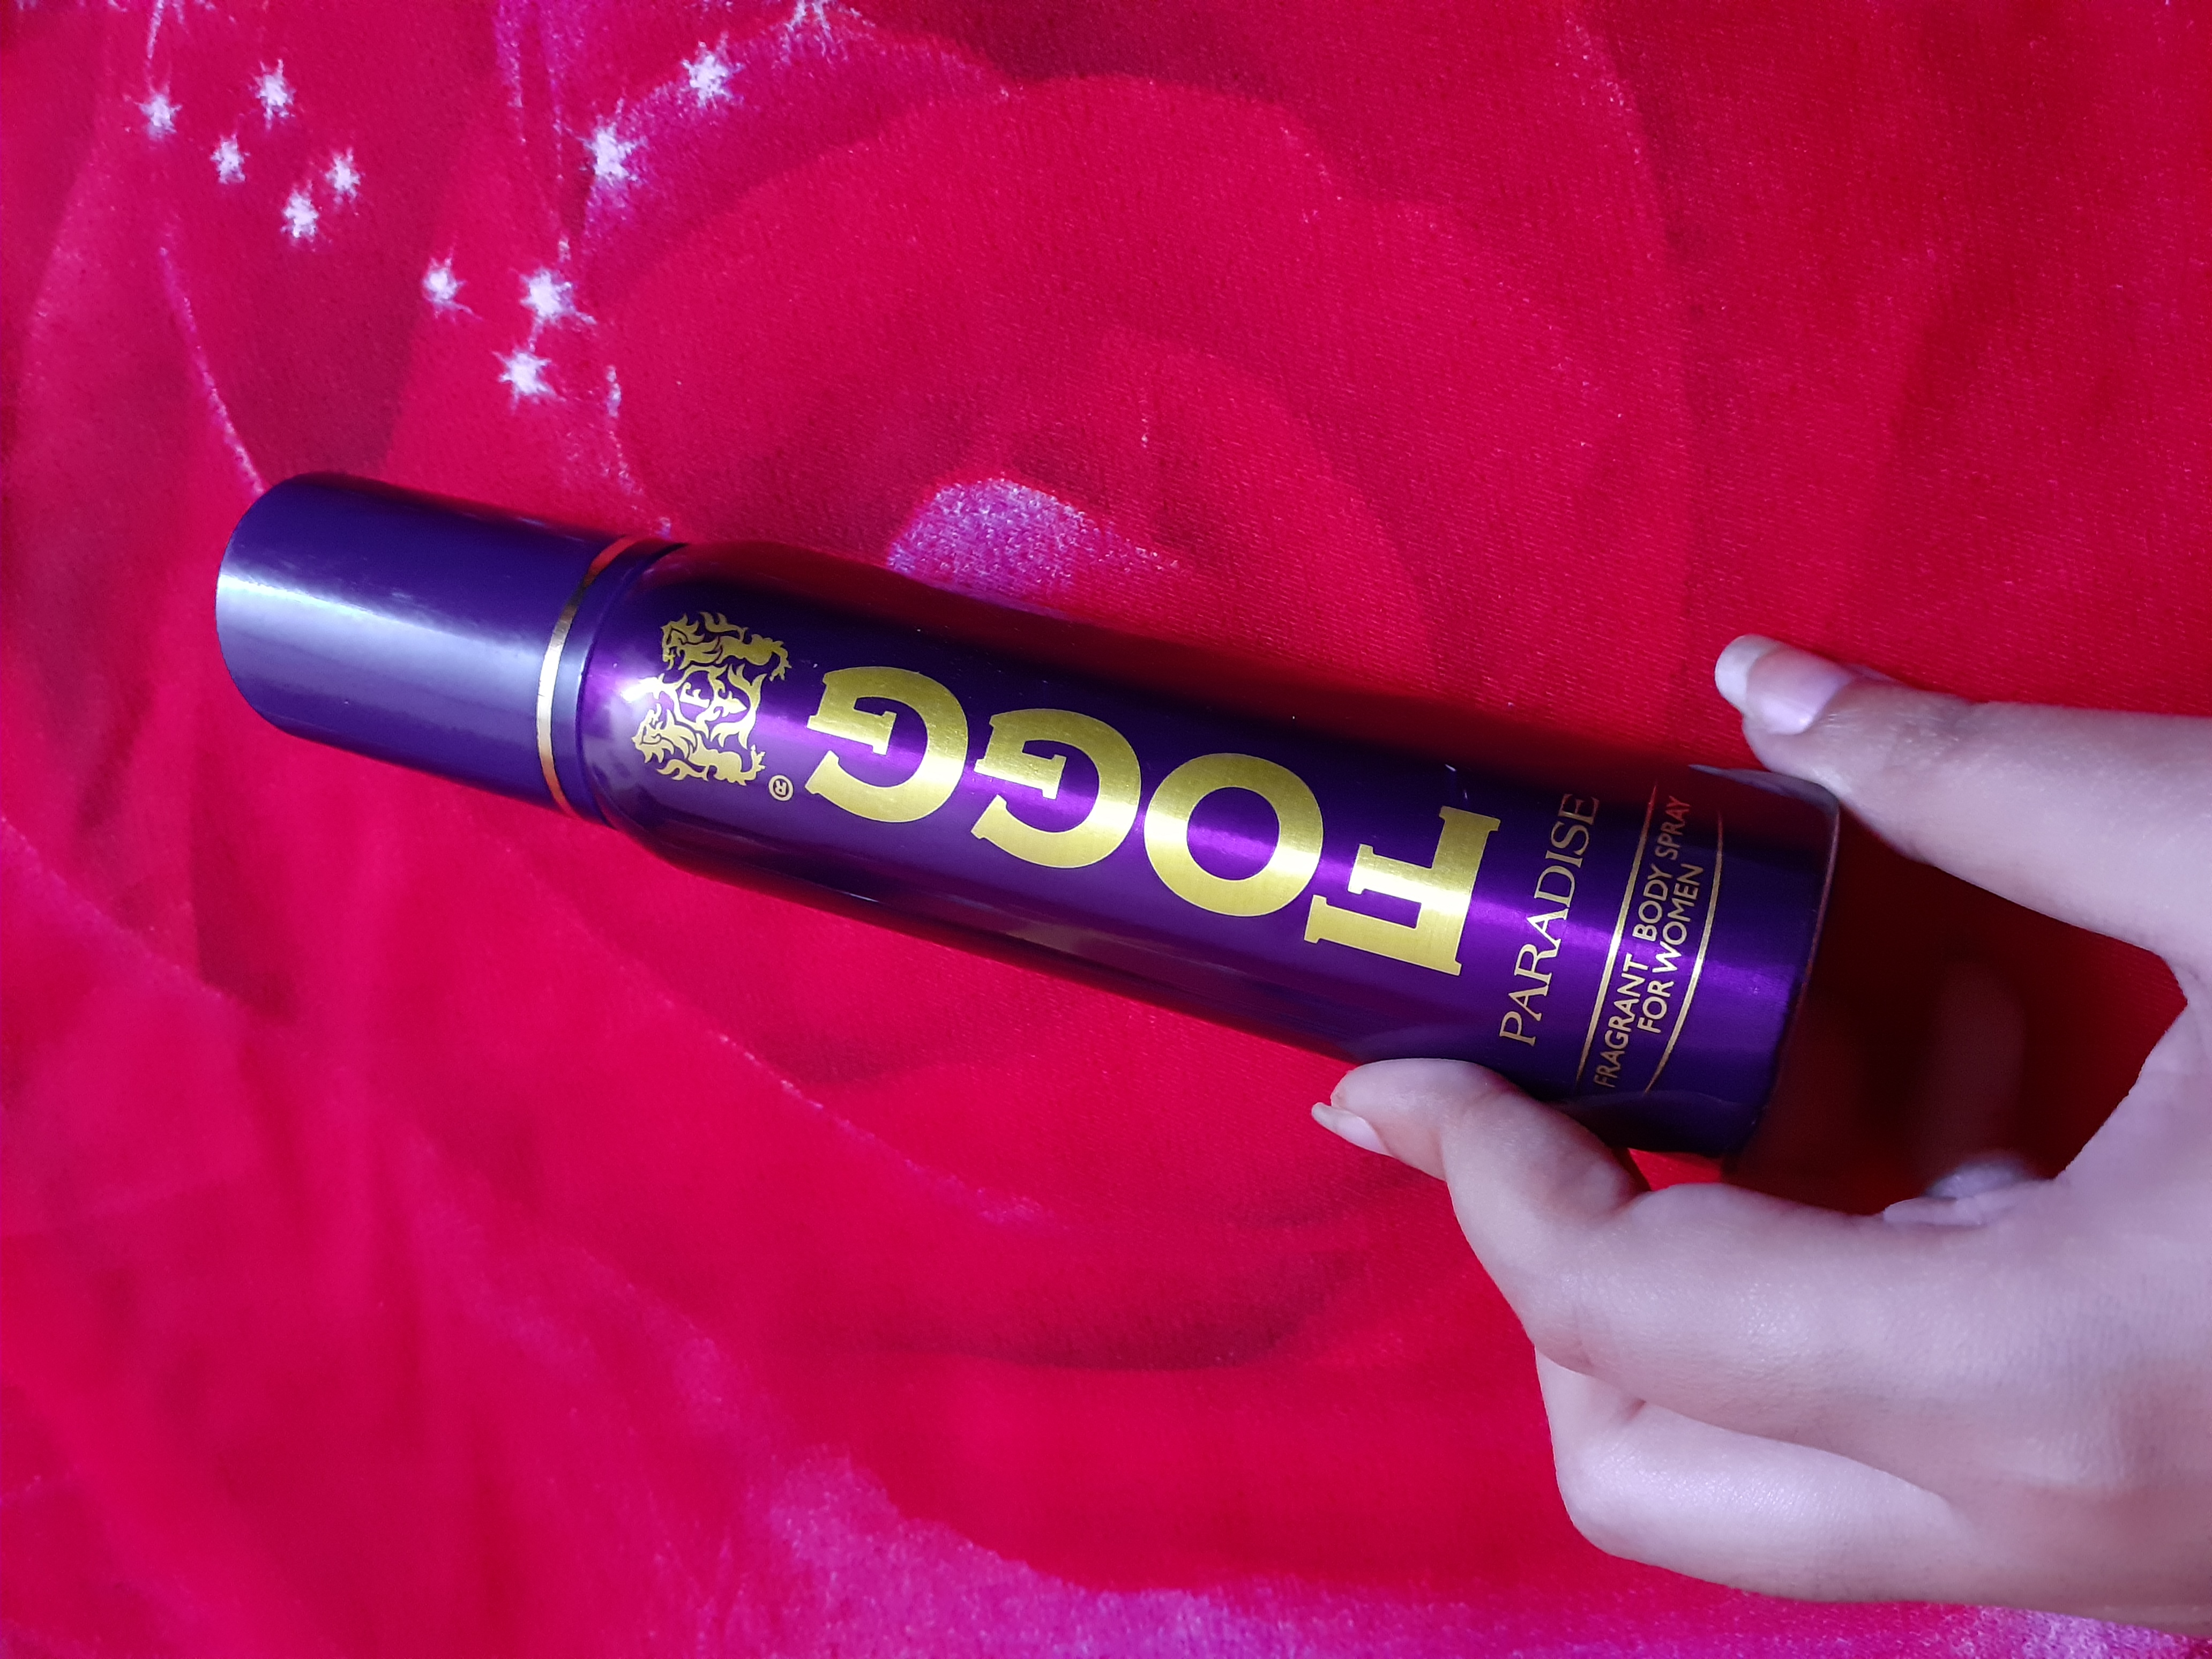 Fogg Paradise Body Spray For Women-Body spray with coolest fragrance-By madhurima7